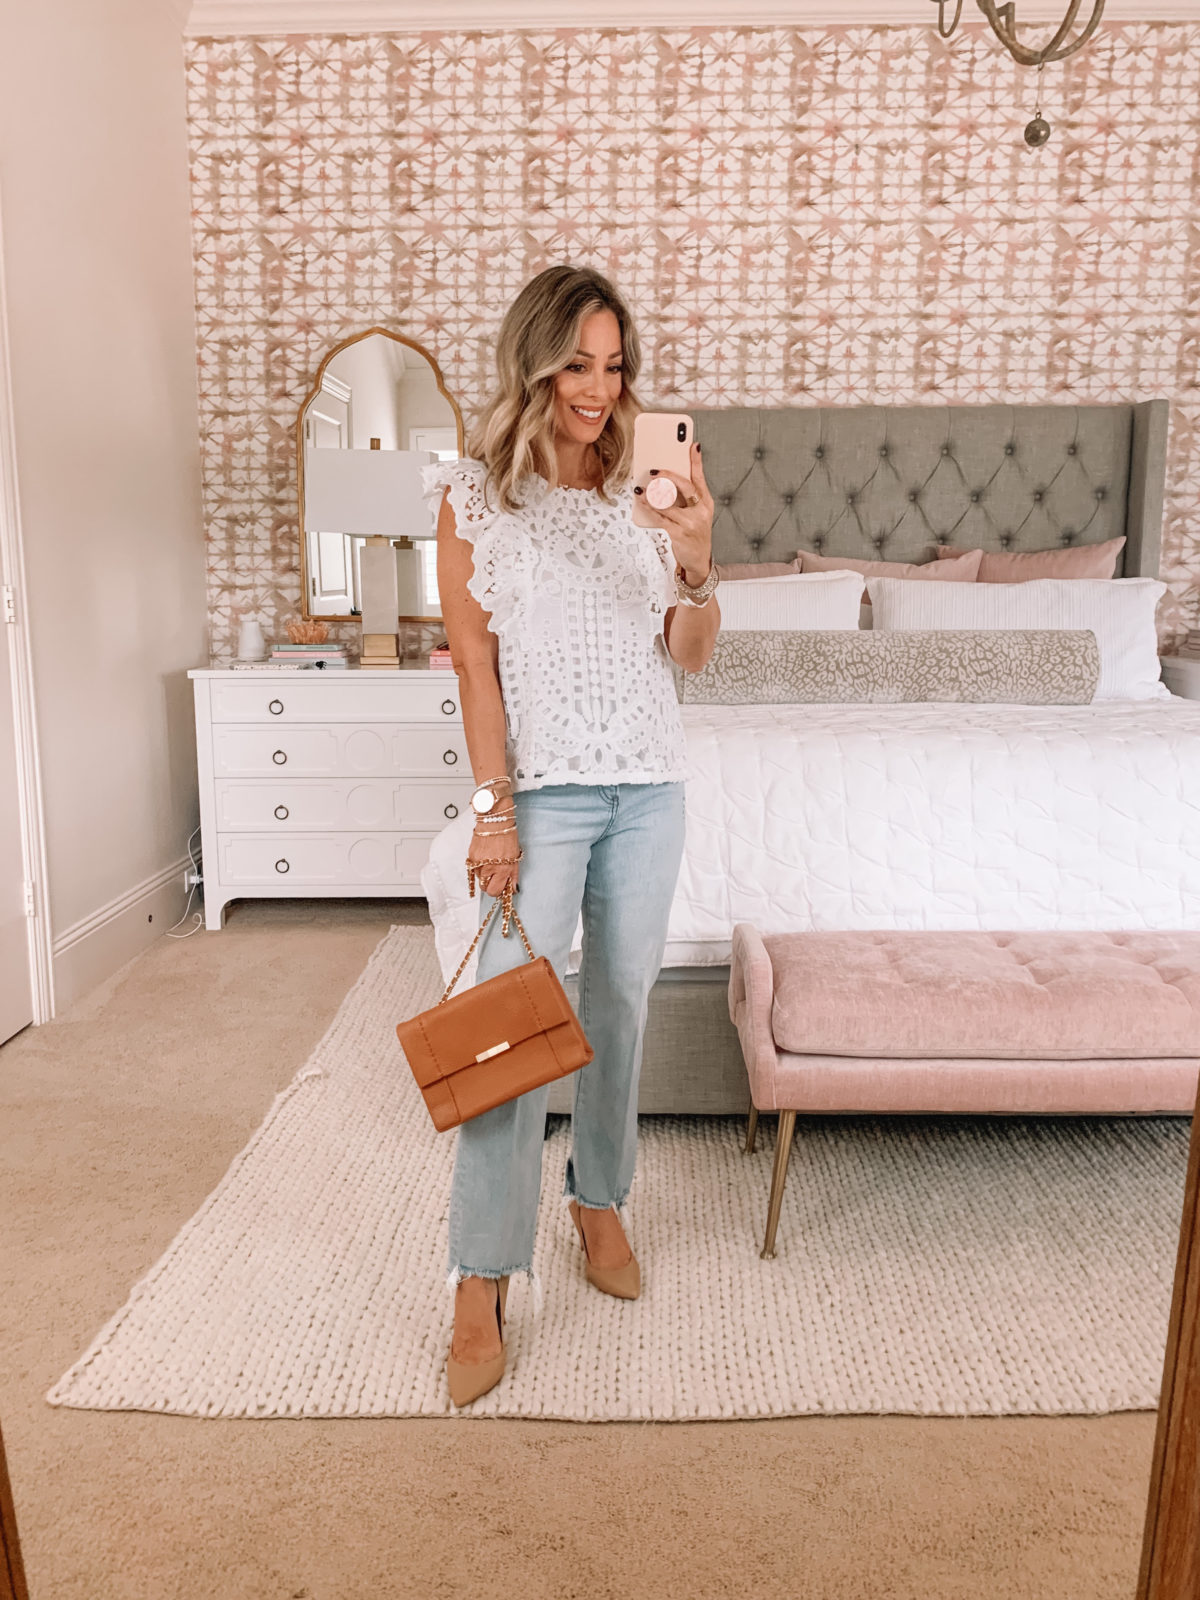 Dressing Room Finds Express, Lace Top, Jeans, Heels, Crossbody